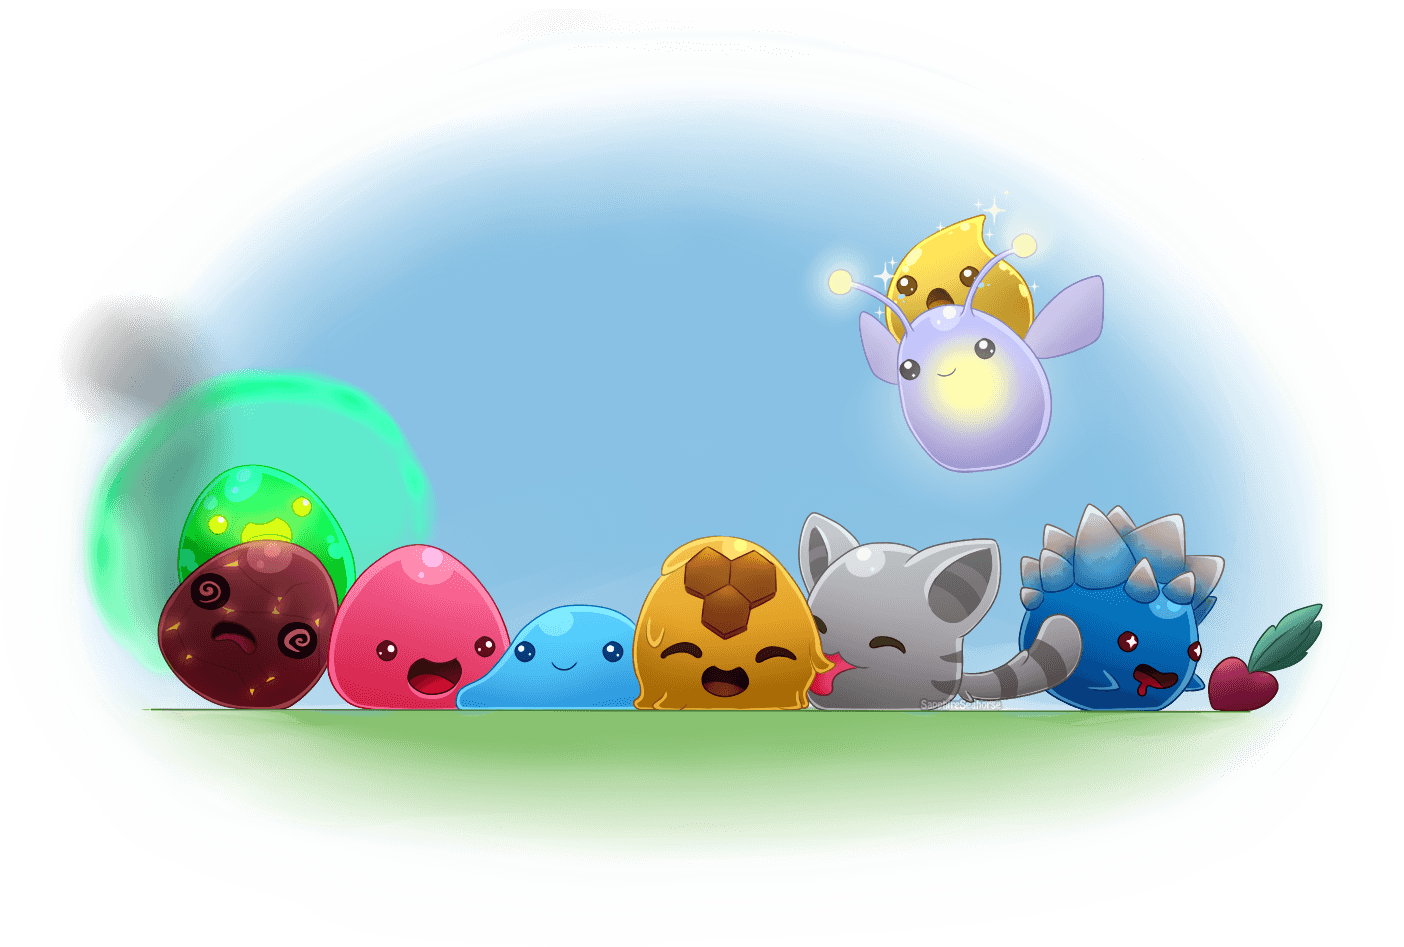 Slime Rancher Wallpapers Wallpaper Cave